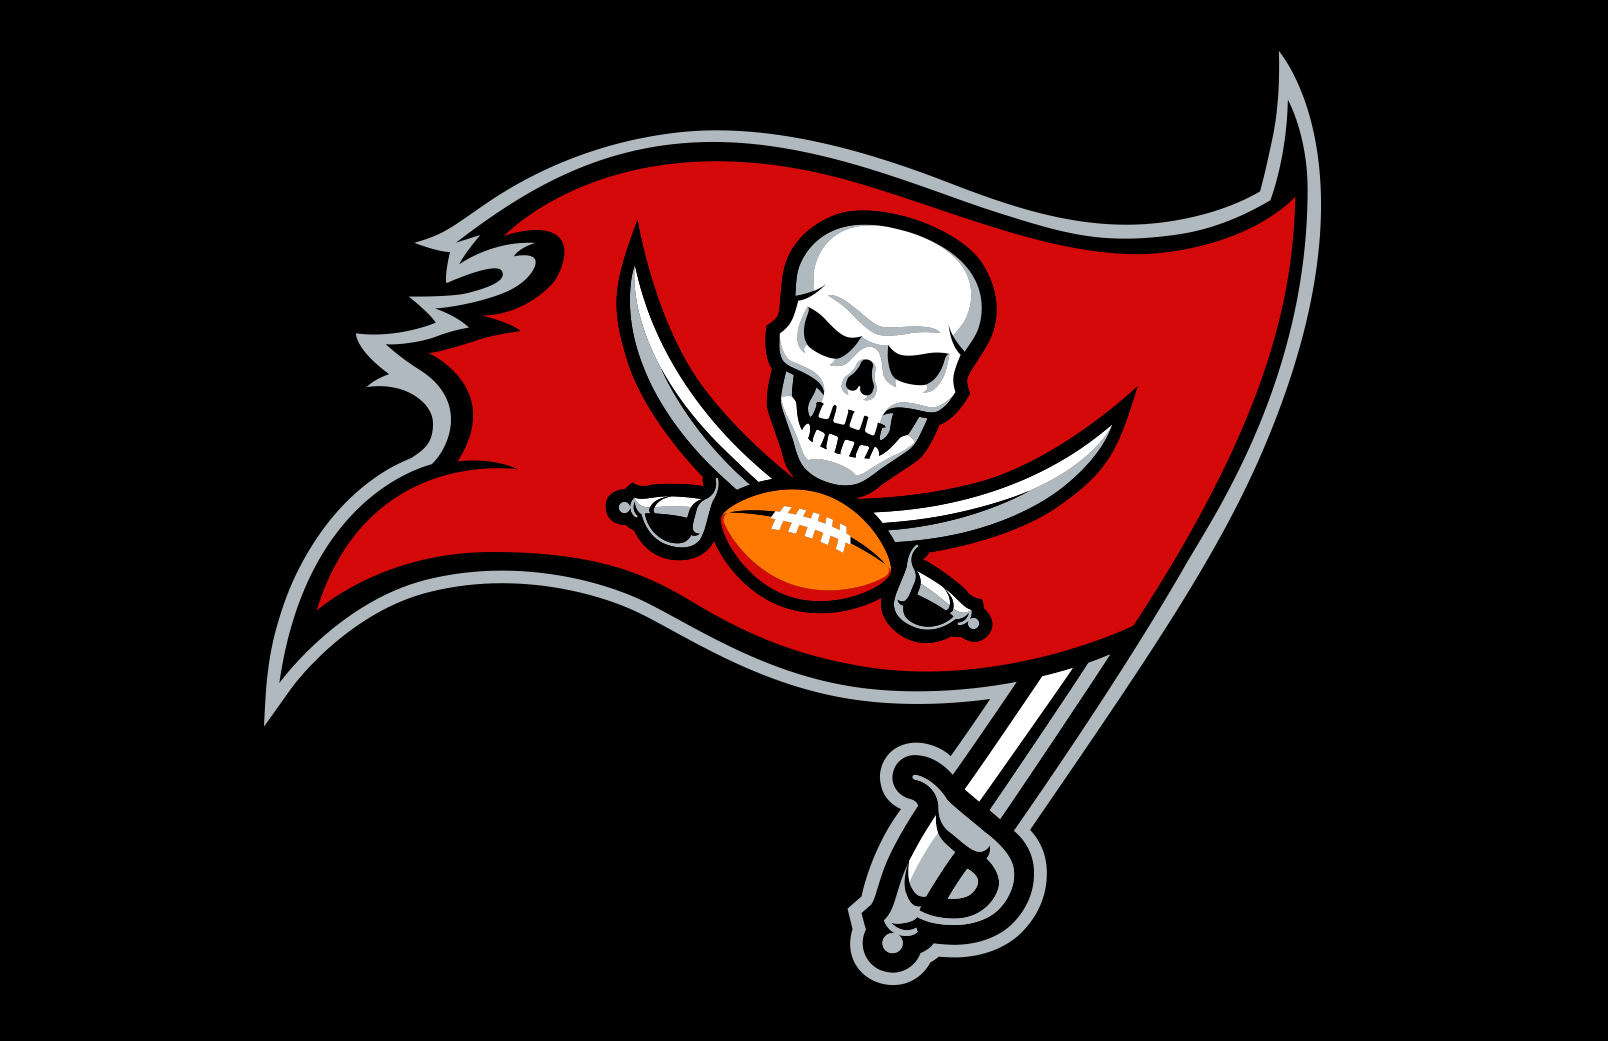 Meaning Tampa Bay Buccaneers logo and symbol.